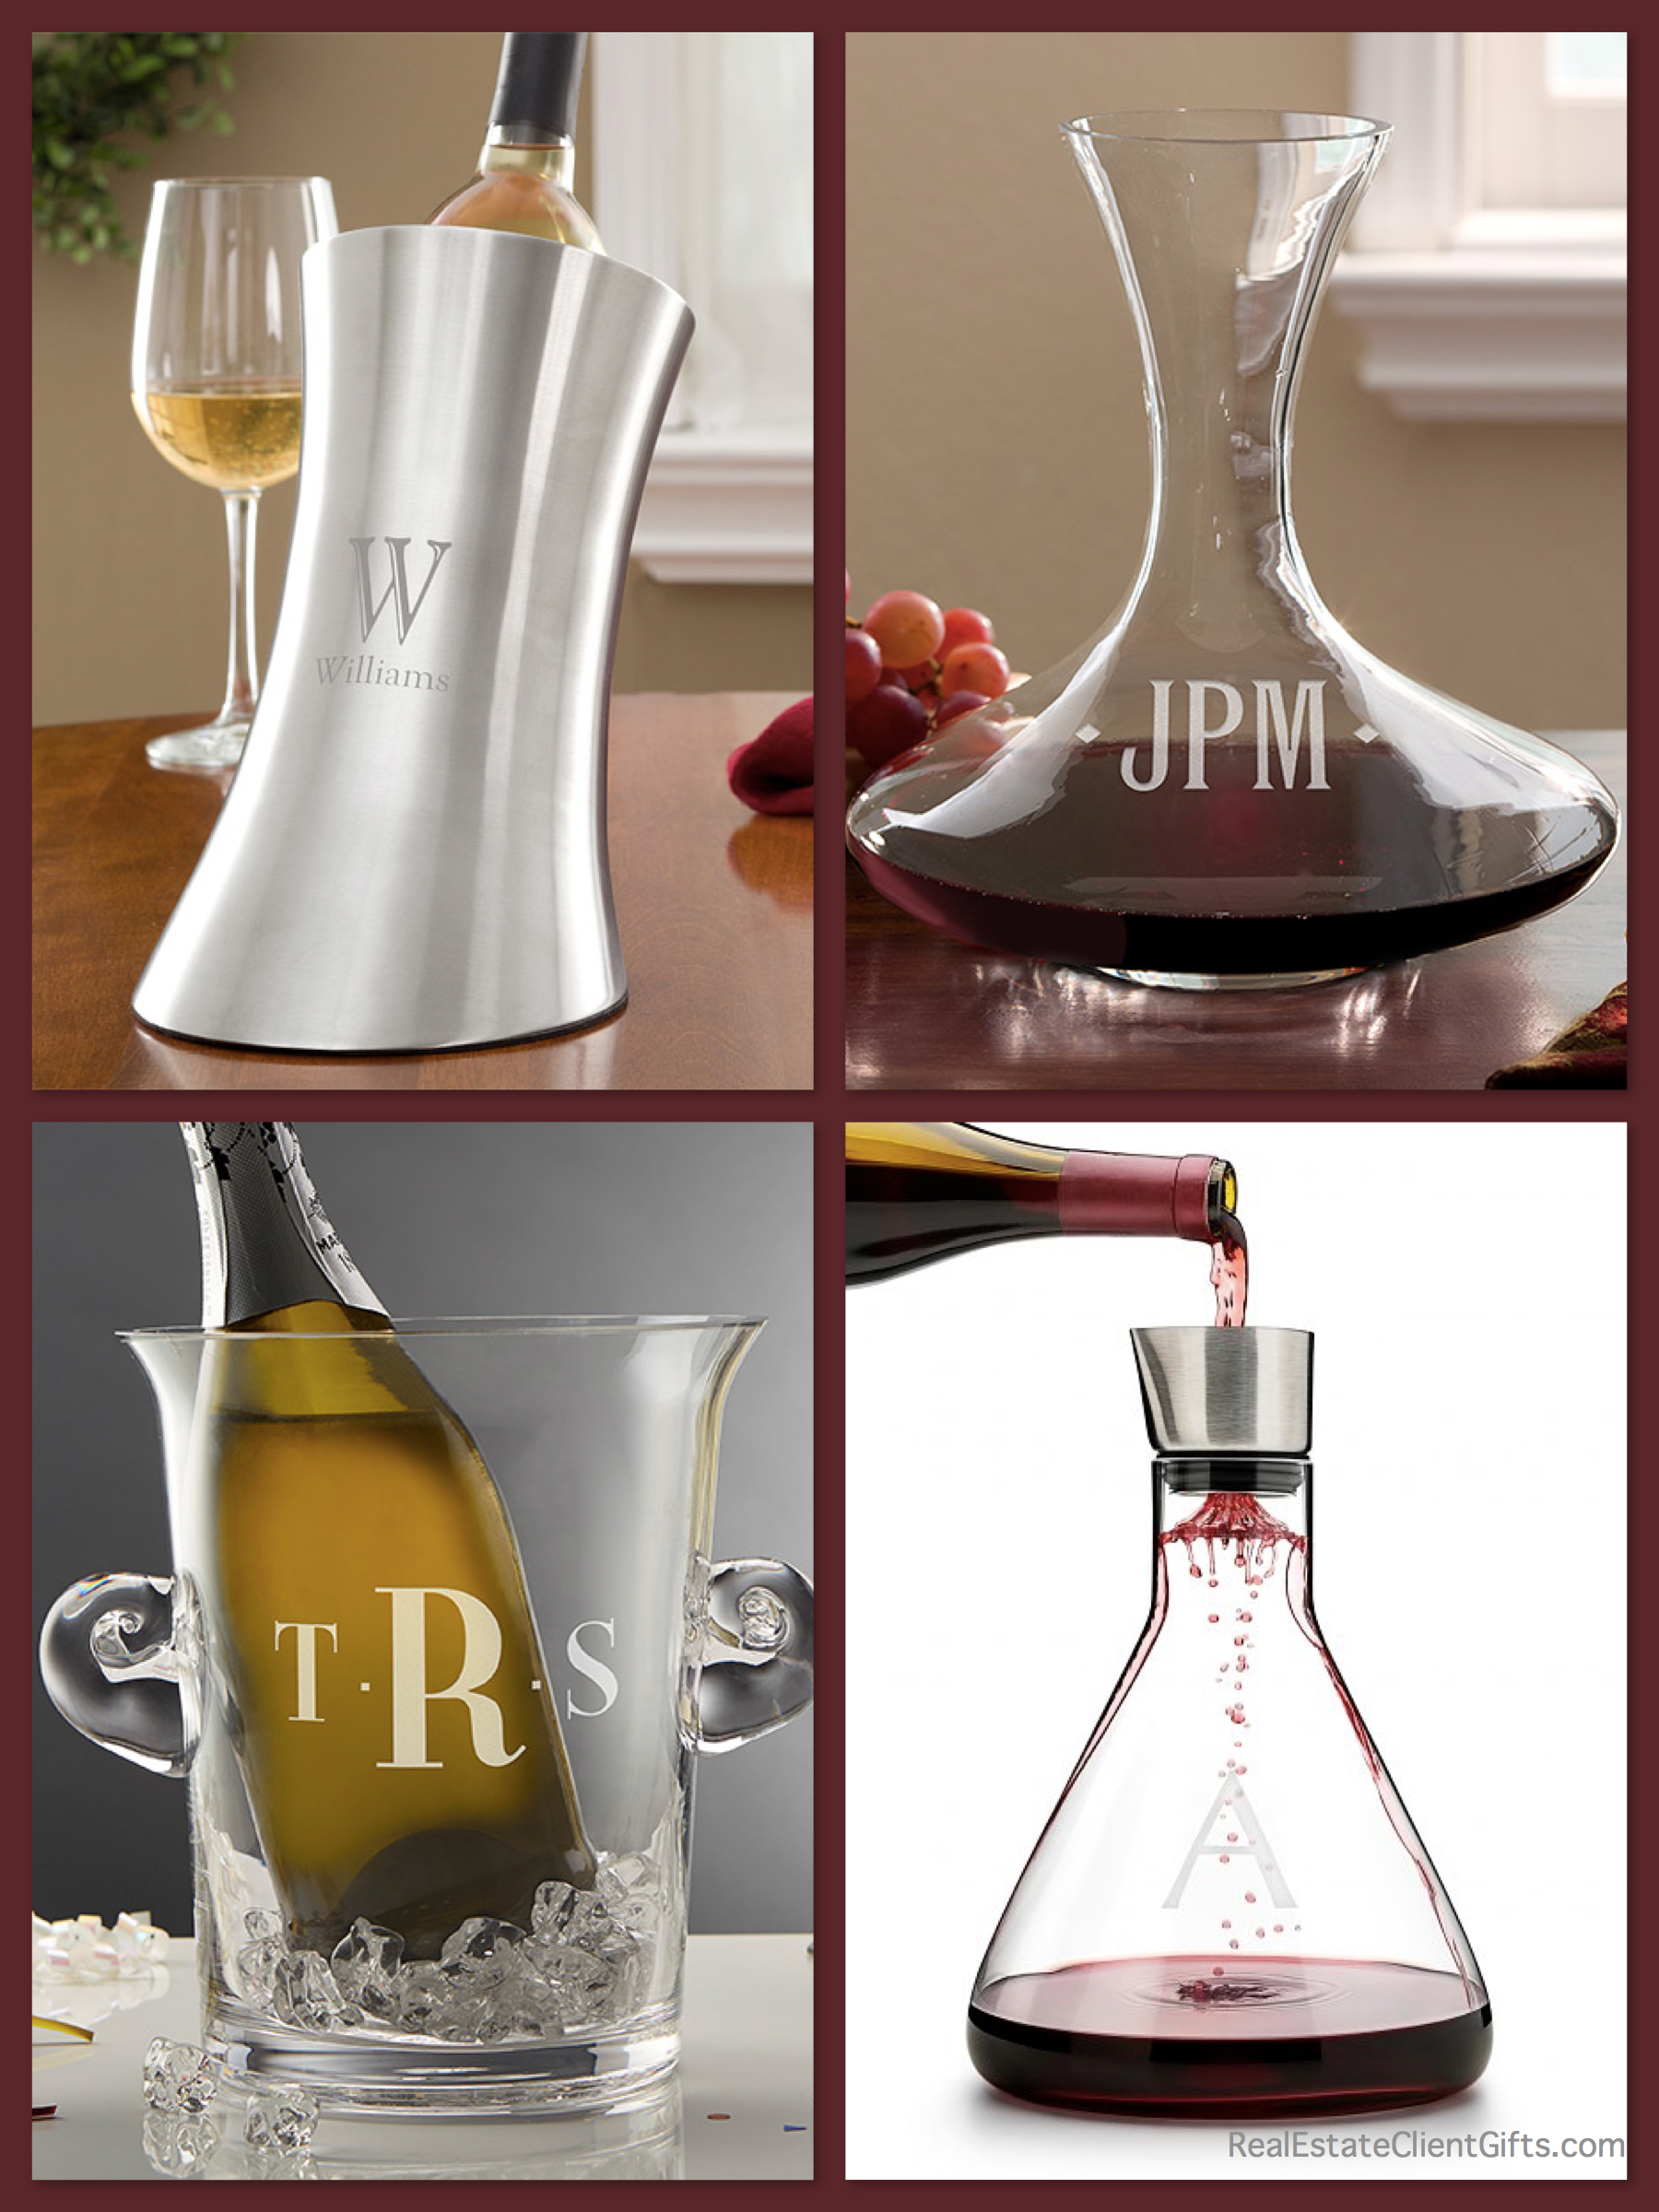 personalized wine accessories make great holiday gifts